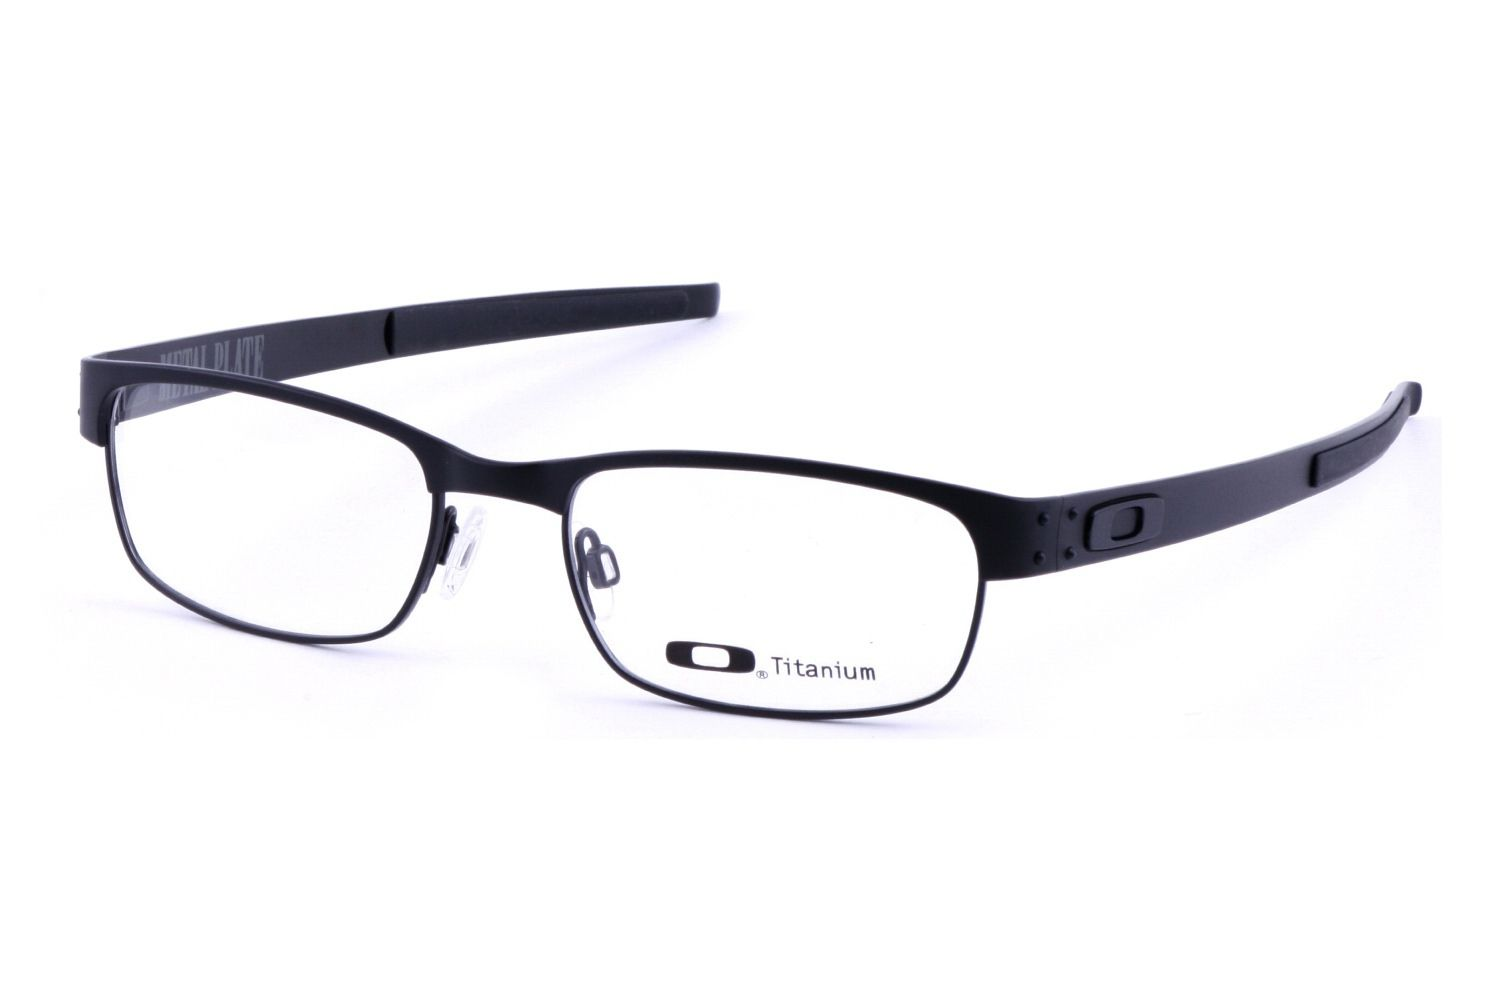 oakley a frame glass  oakley frames glasses